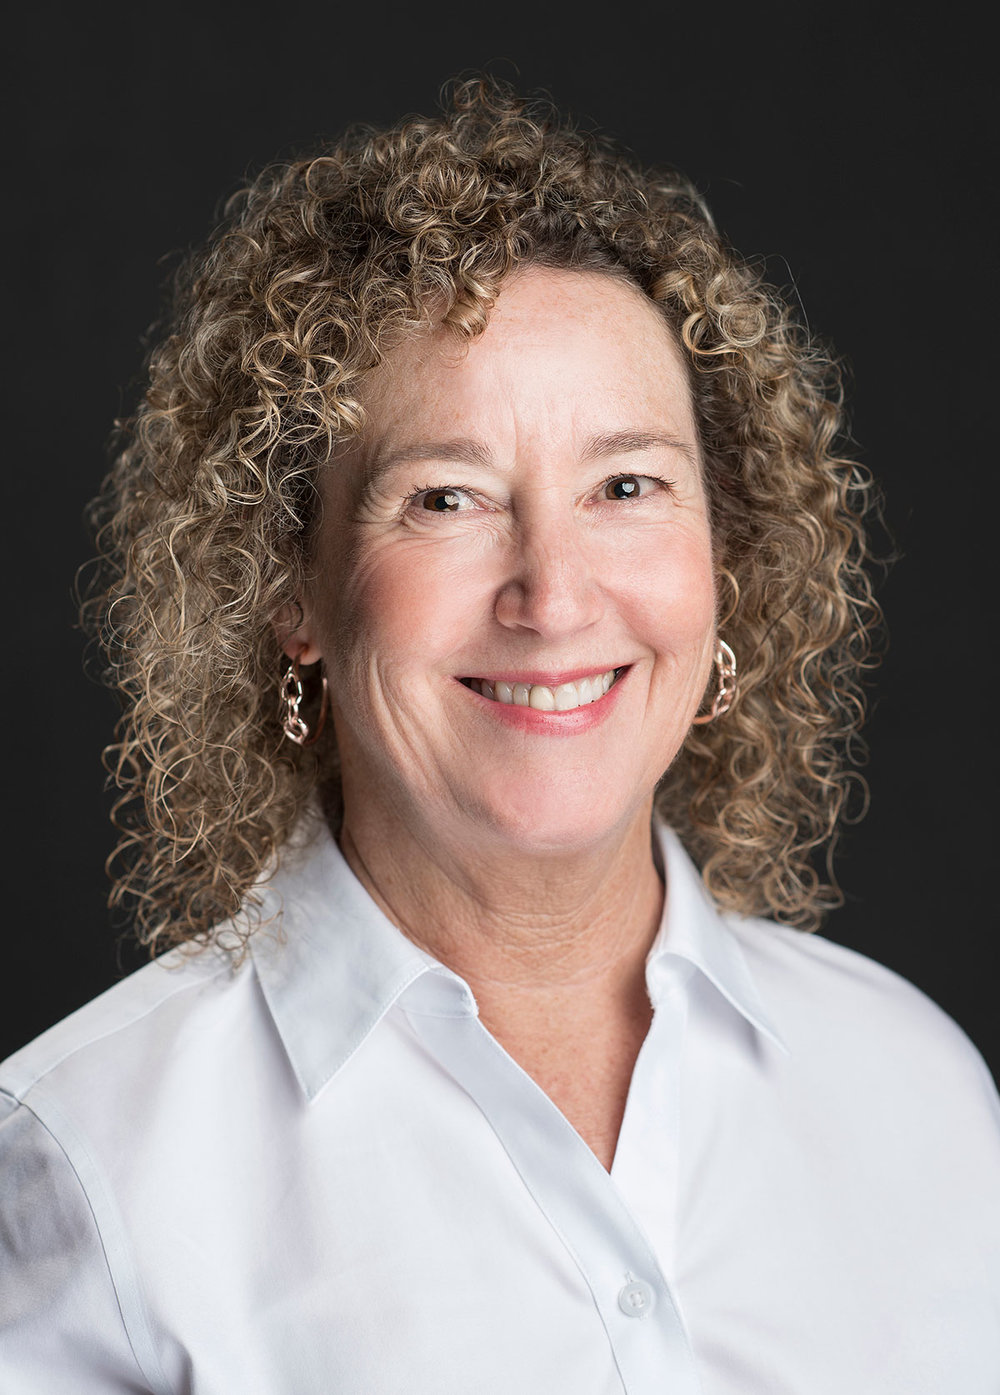 Professional headhshot of woman with curly hair